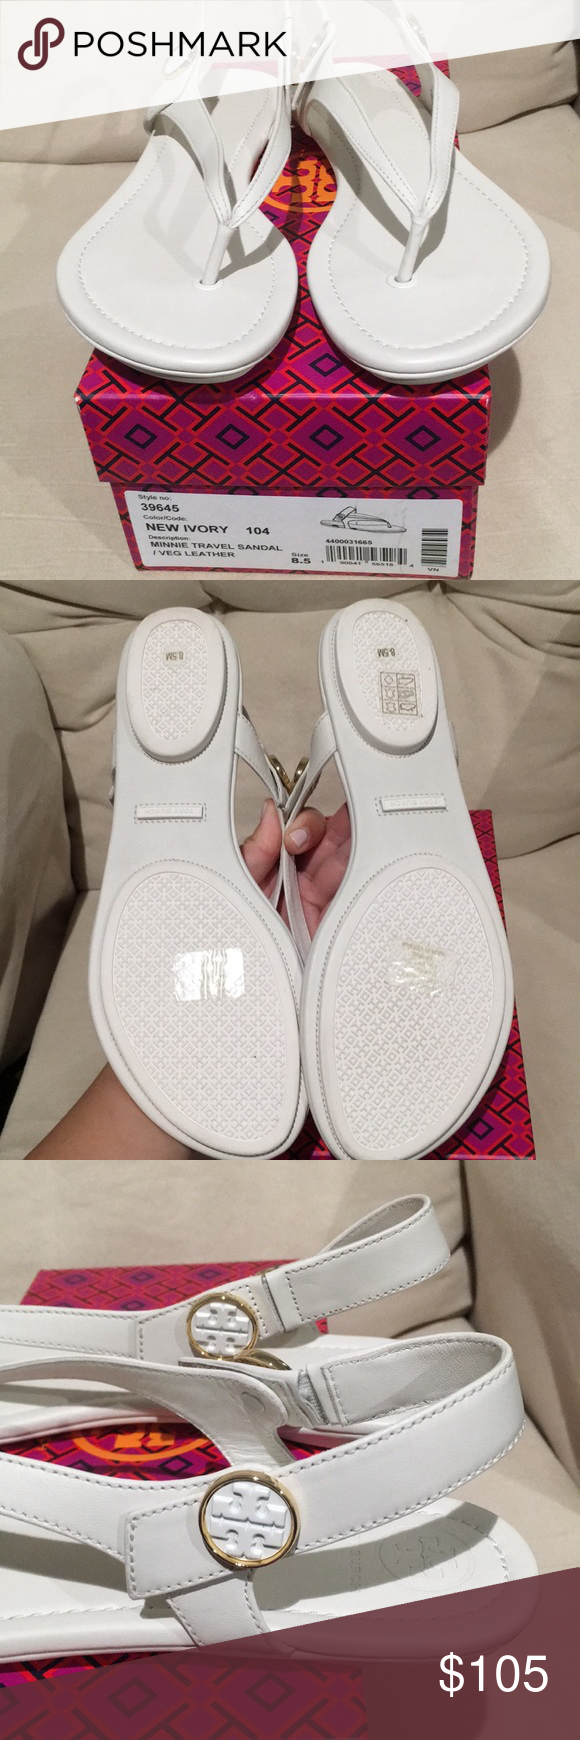 ce1c85ba145757 Tory Burch Minnie Travel Sandal Brand new never worn. Tory Burch Minnie  Travel Sandal in